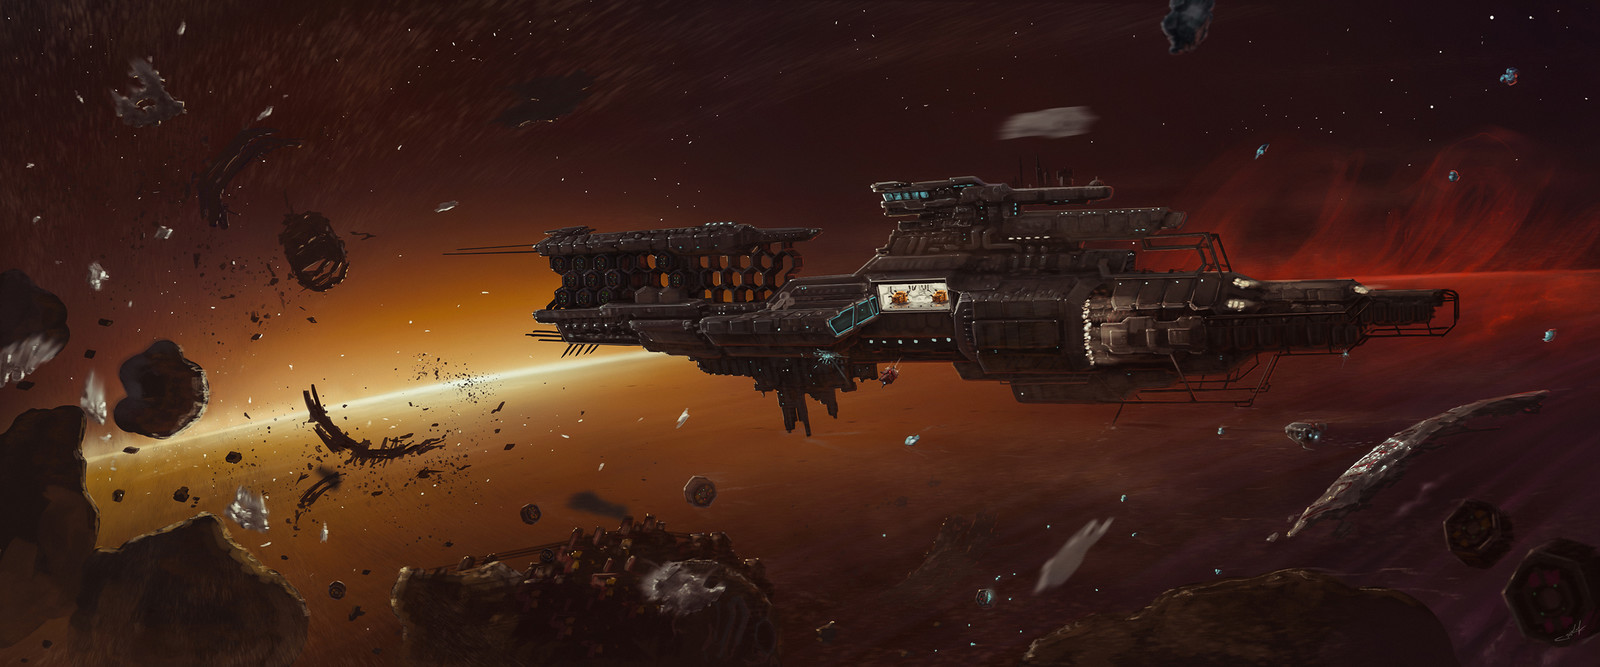 The Abandoned Space Station